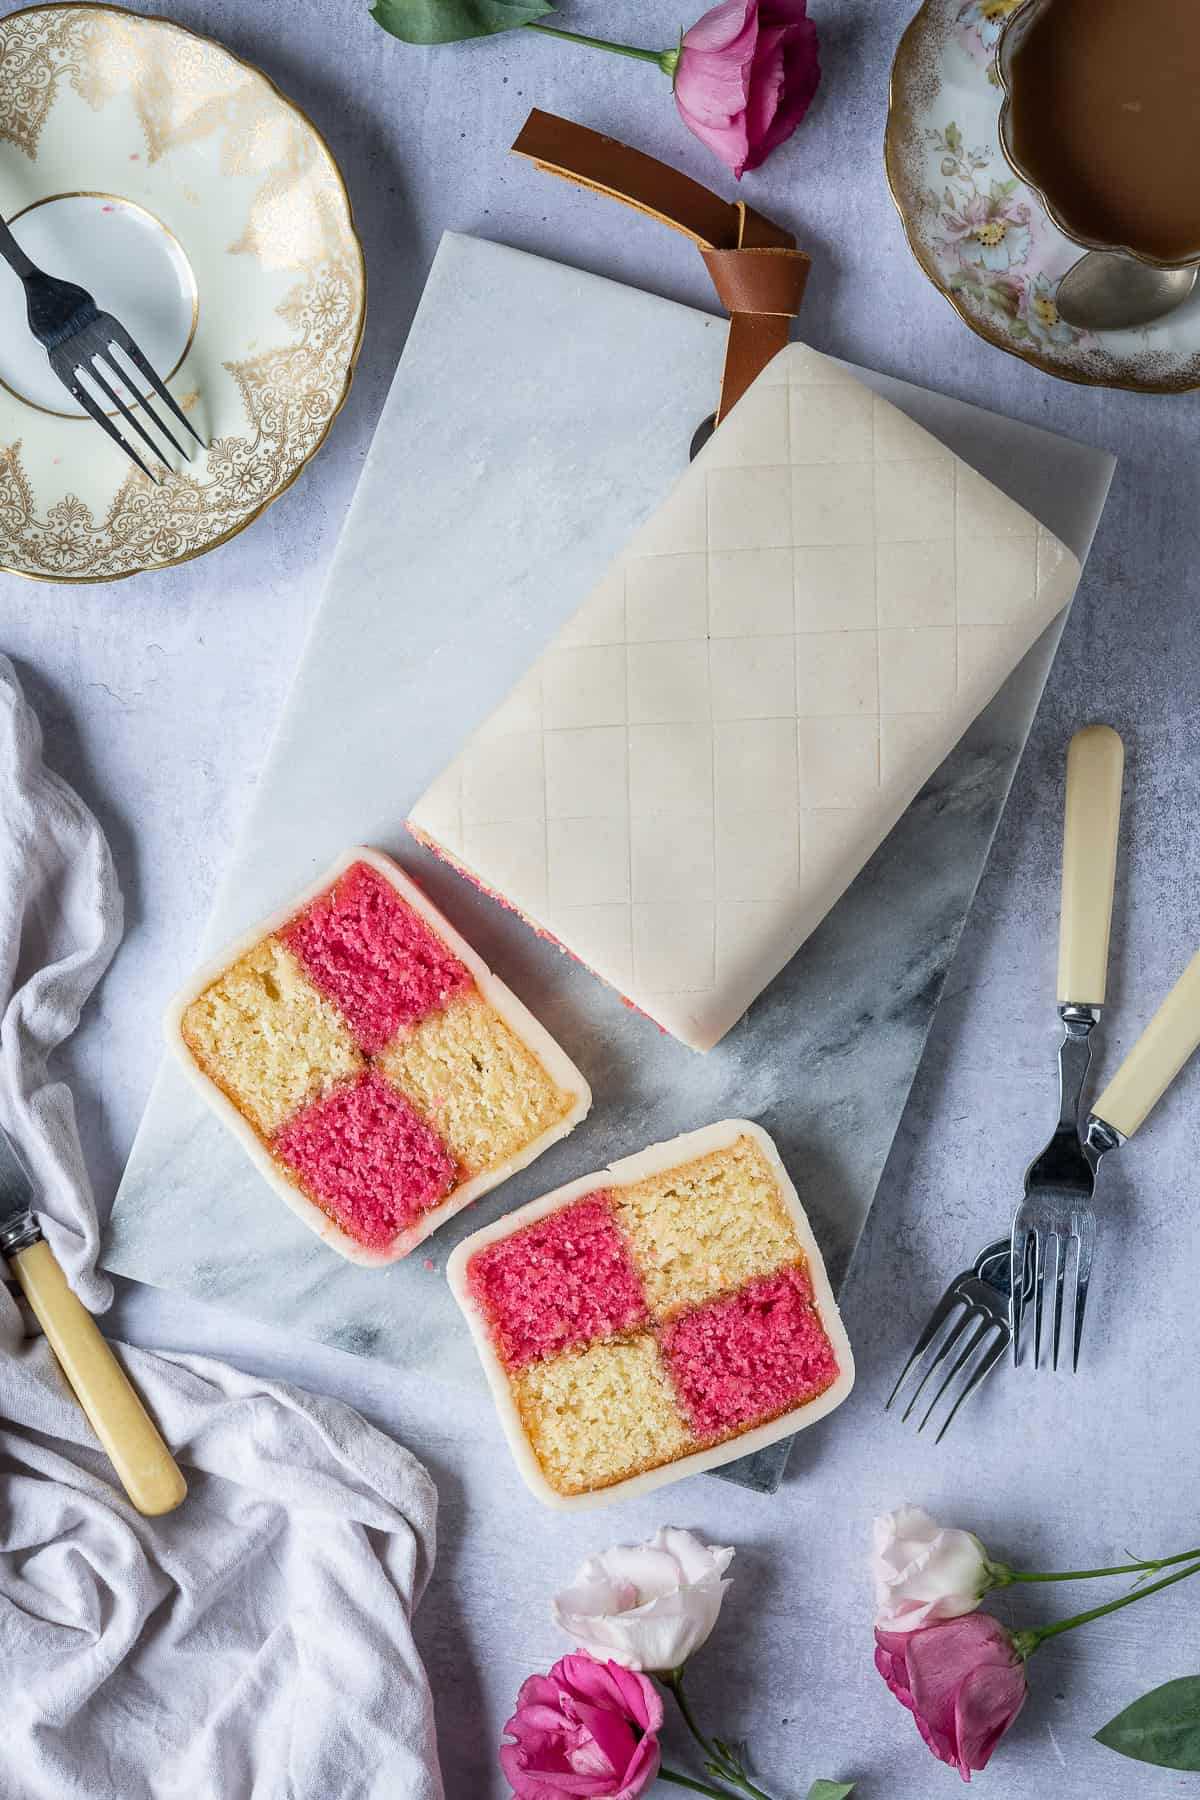 Sliced vegan Battenberg cake on a marble board surrounded by flowers, a grey cloth, pastry forks and a cup of tea.